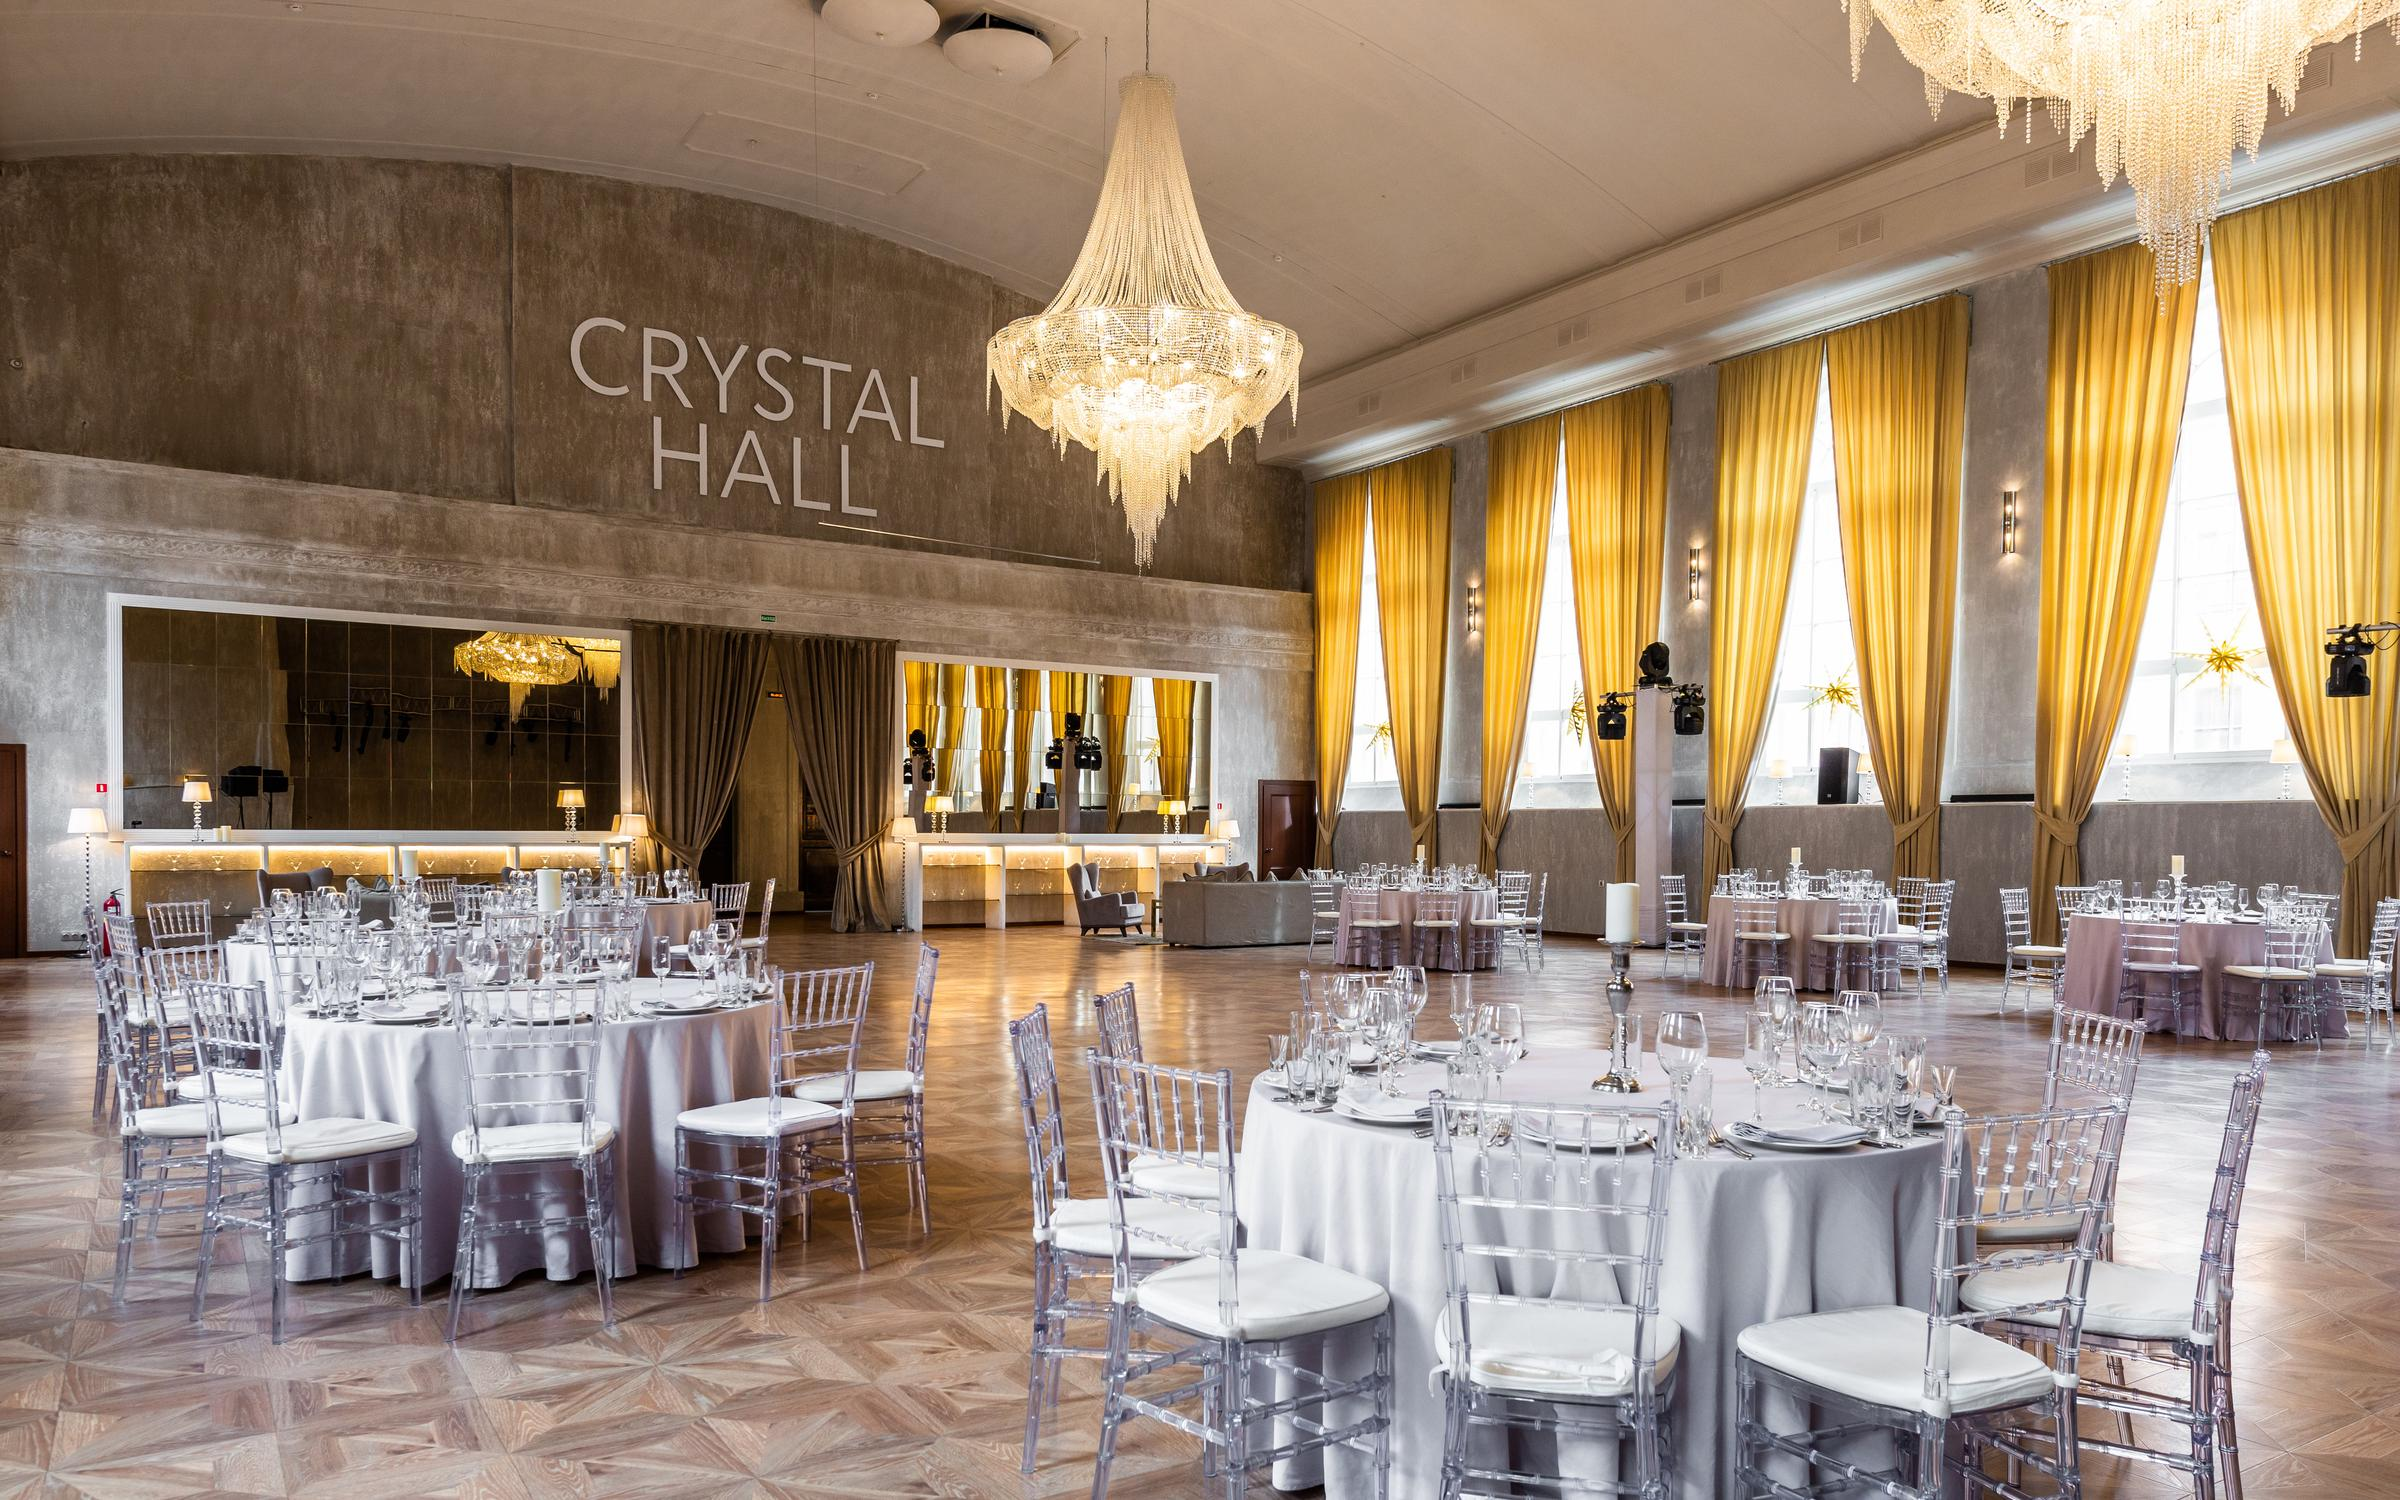 фотография Ресторана Crystal Hall в Петроградском районе